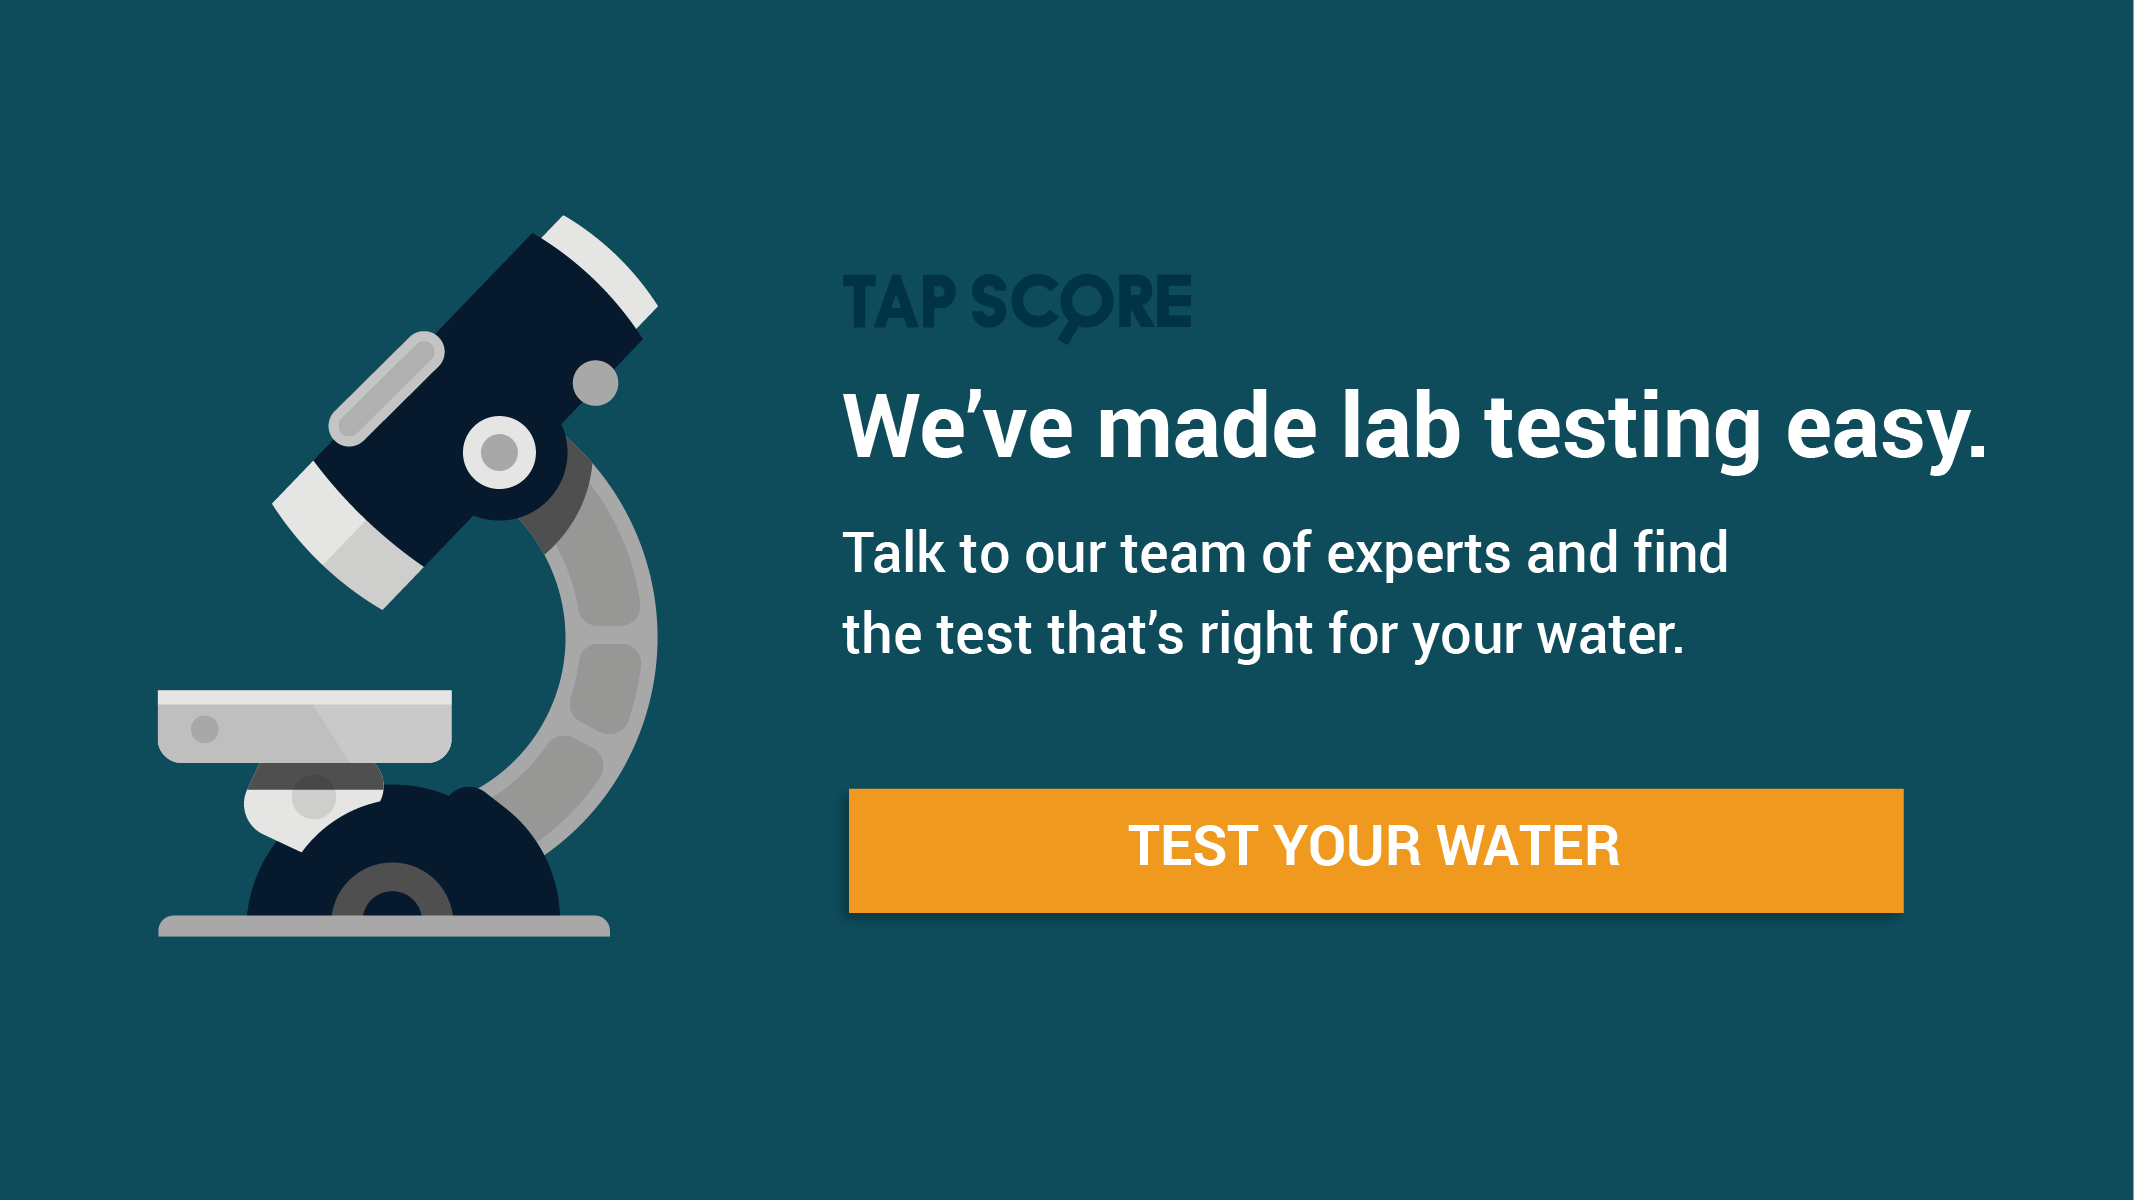 Test your water now